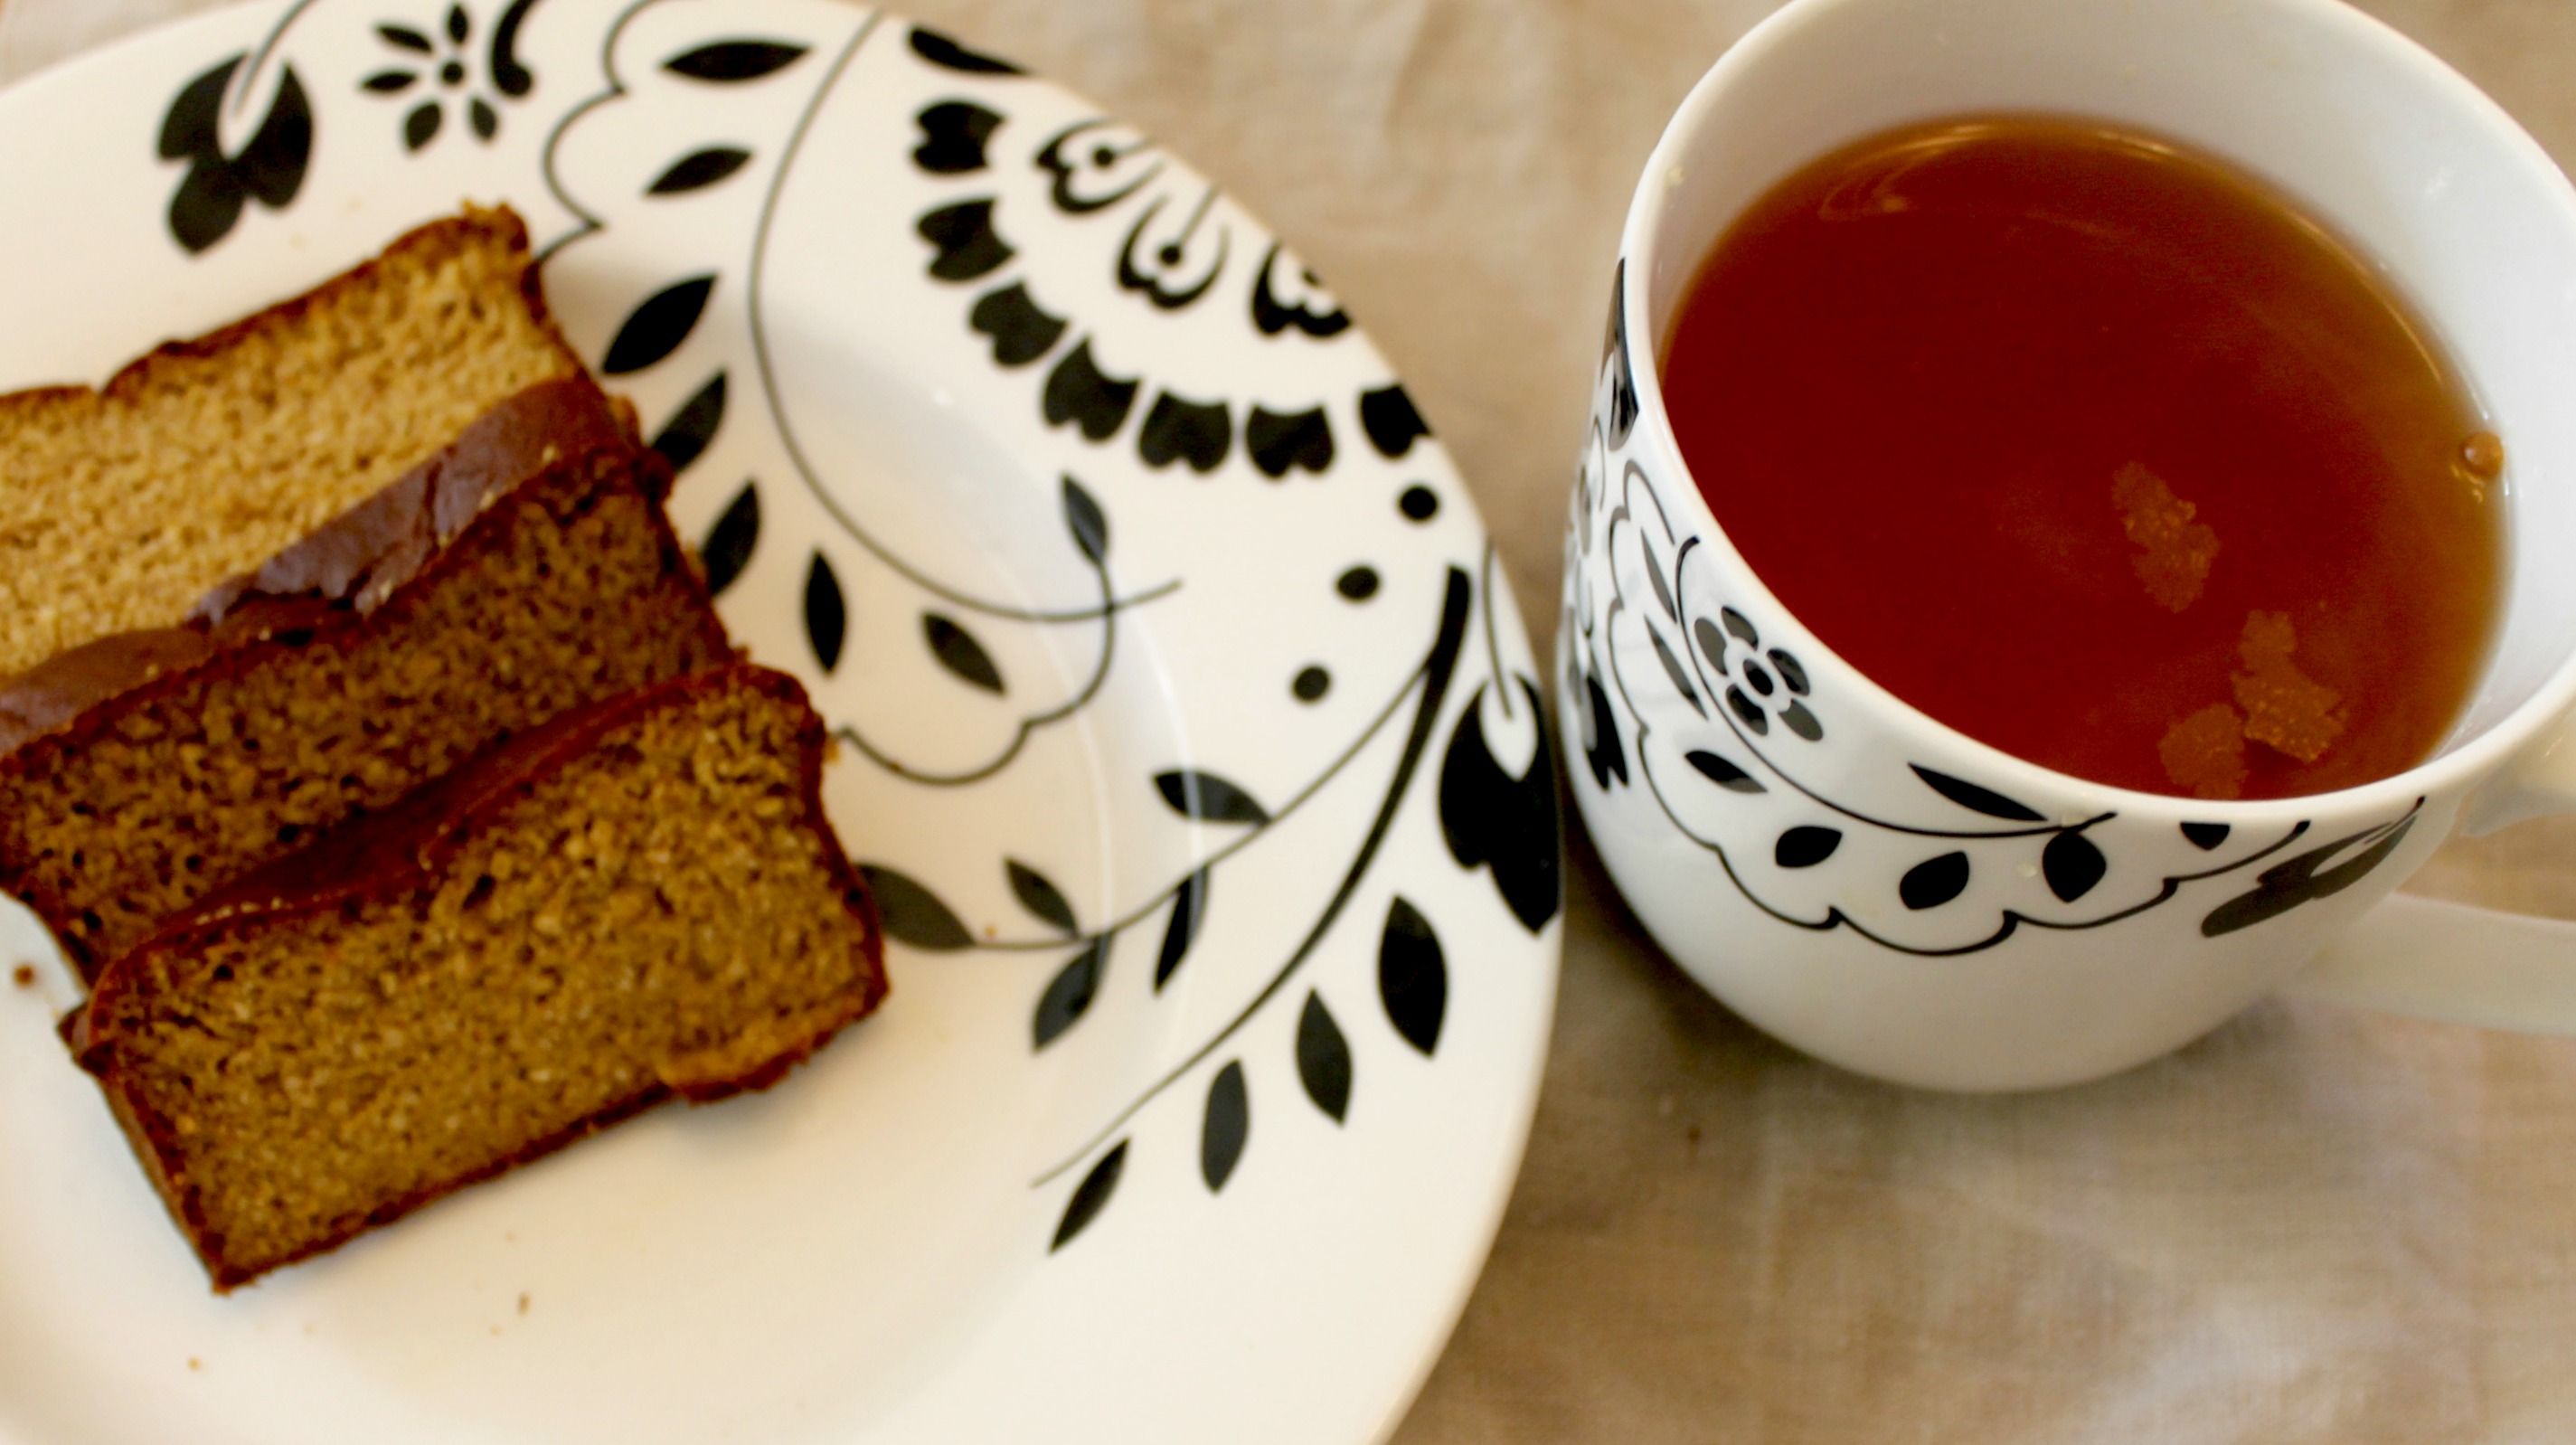 How to Make a Hot Toddy and Bread